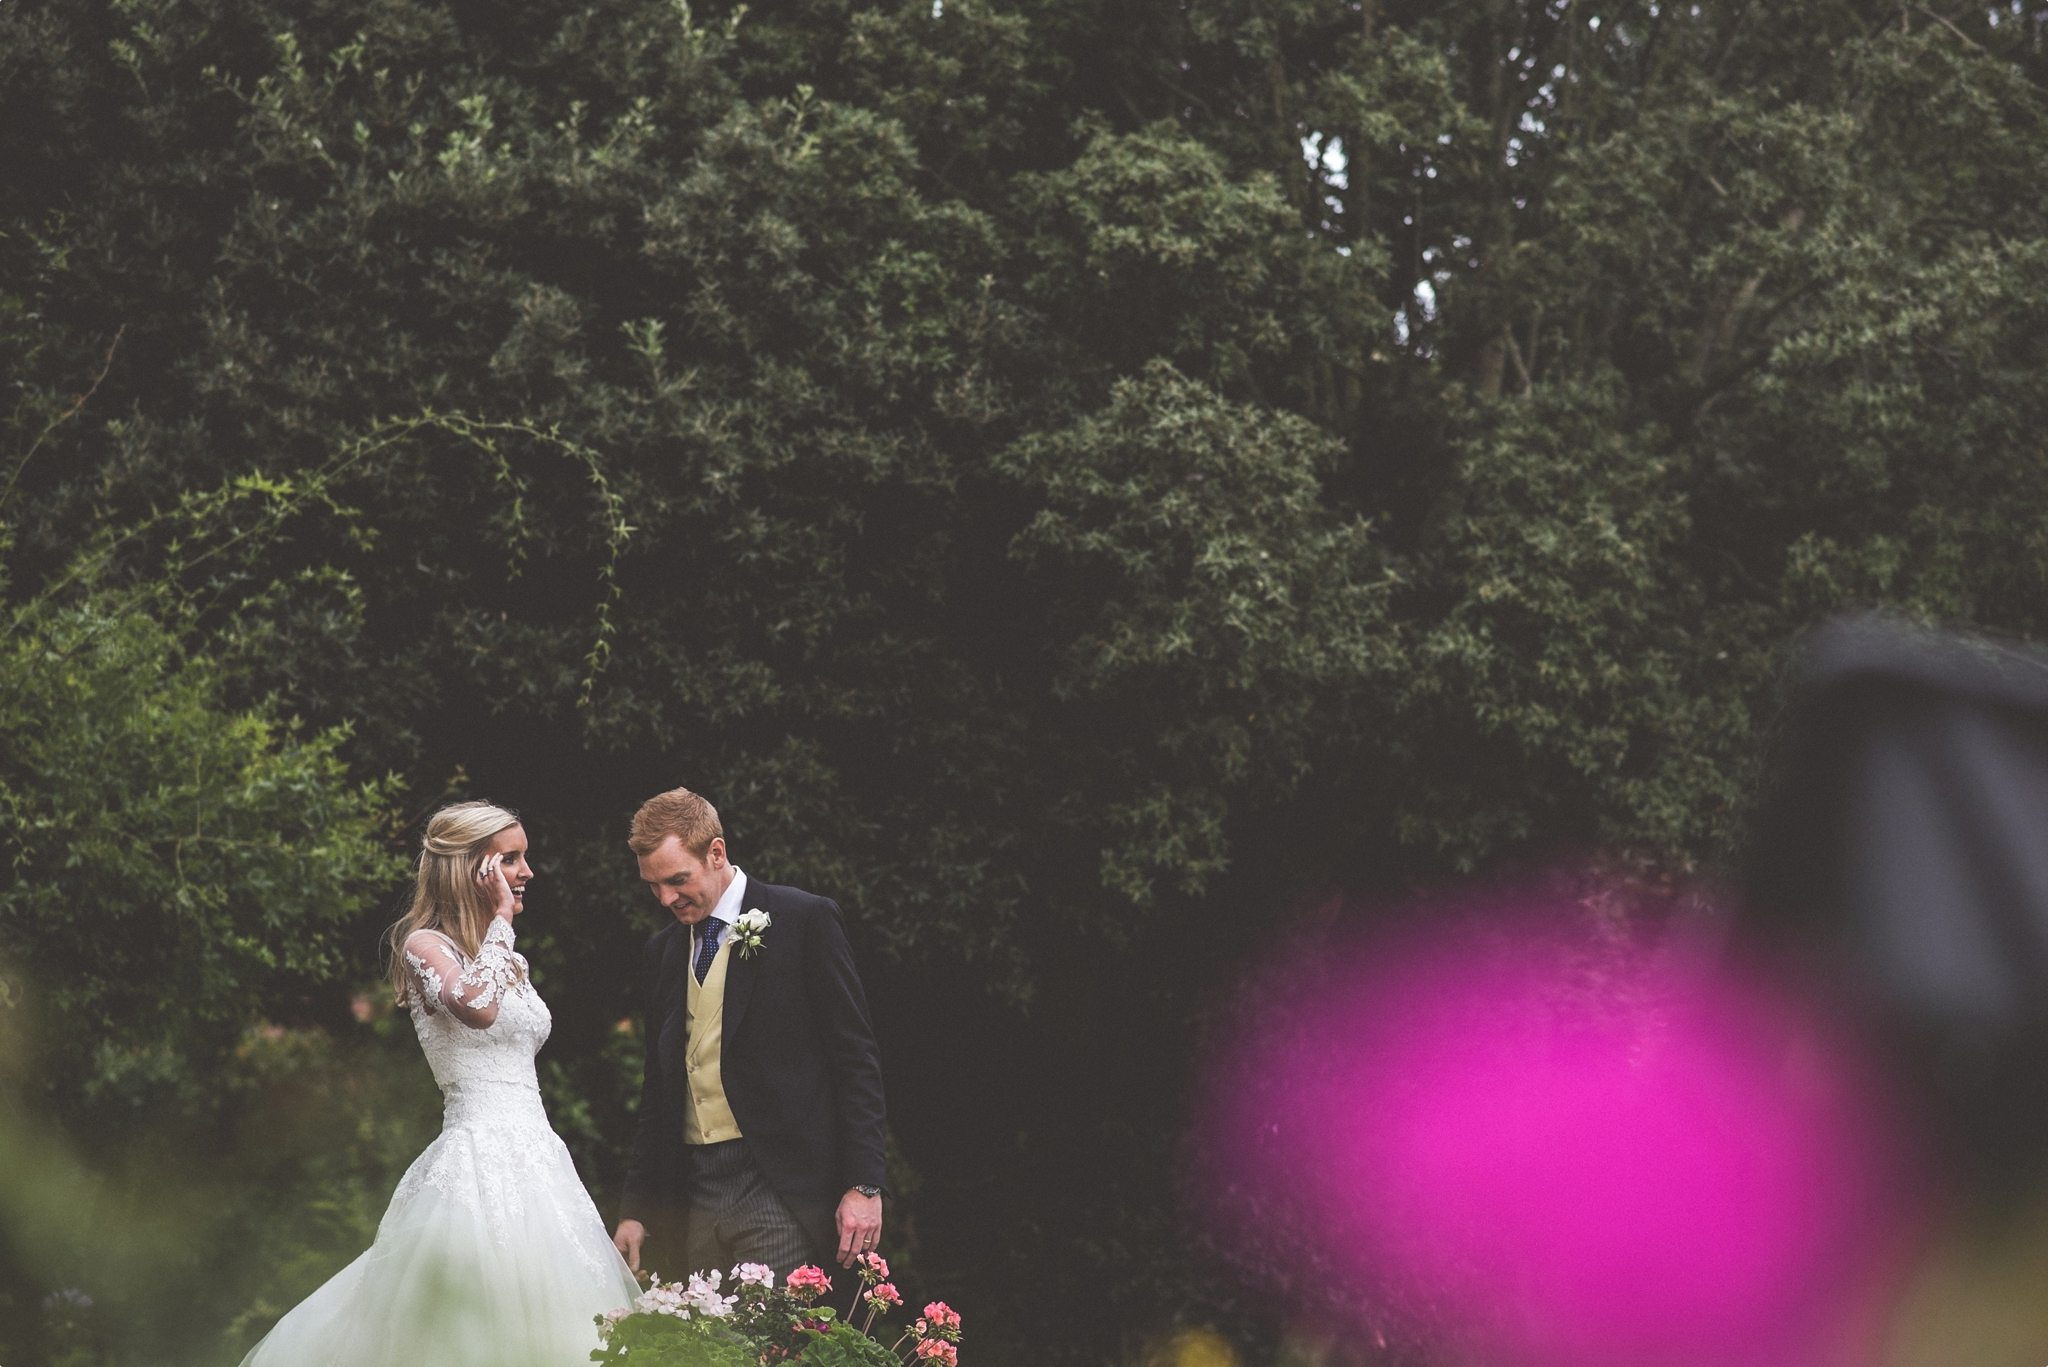 st-audries-park-wedding-maria-assia-photography-628